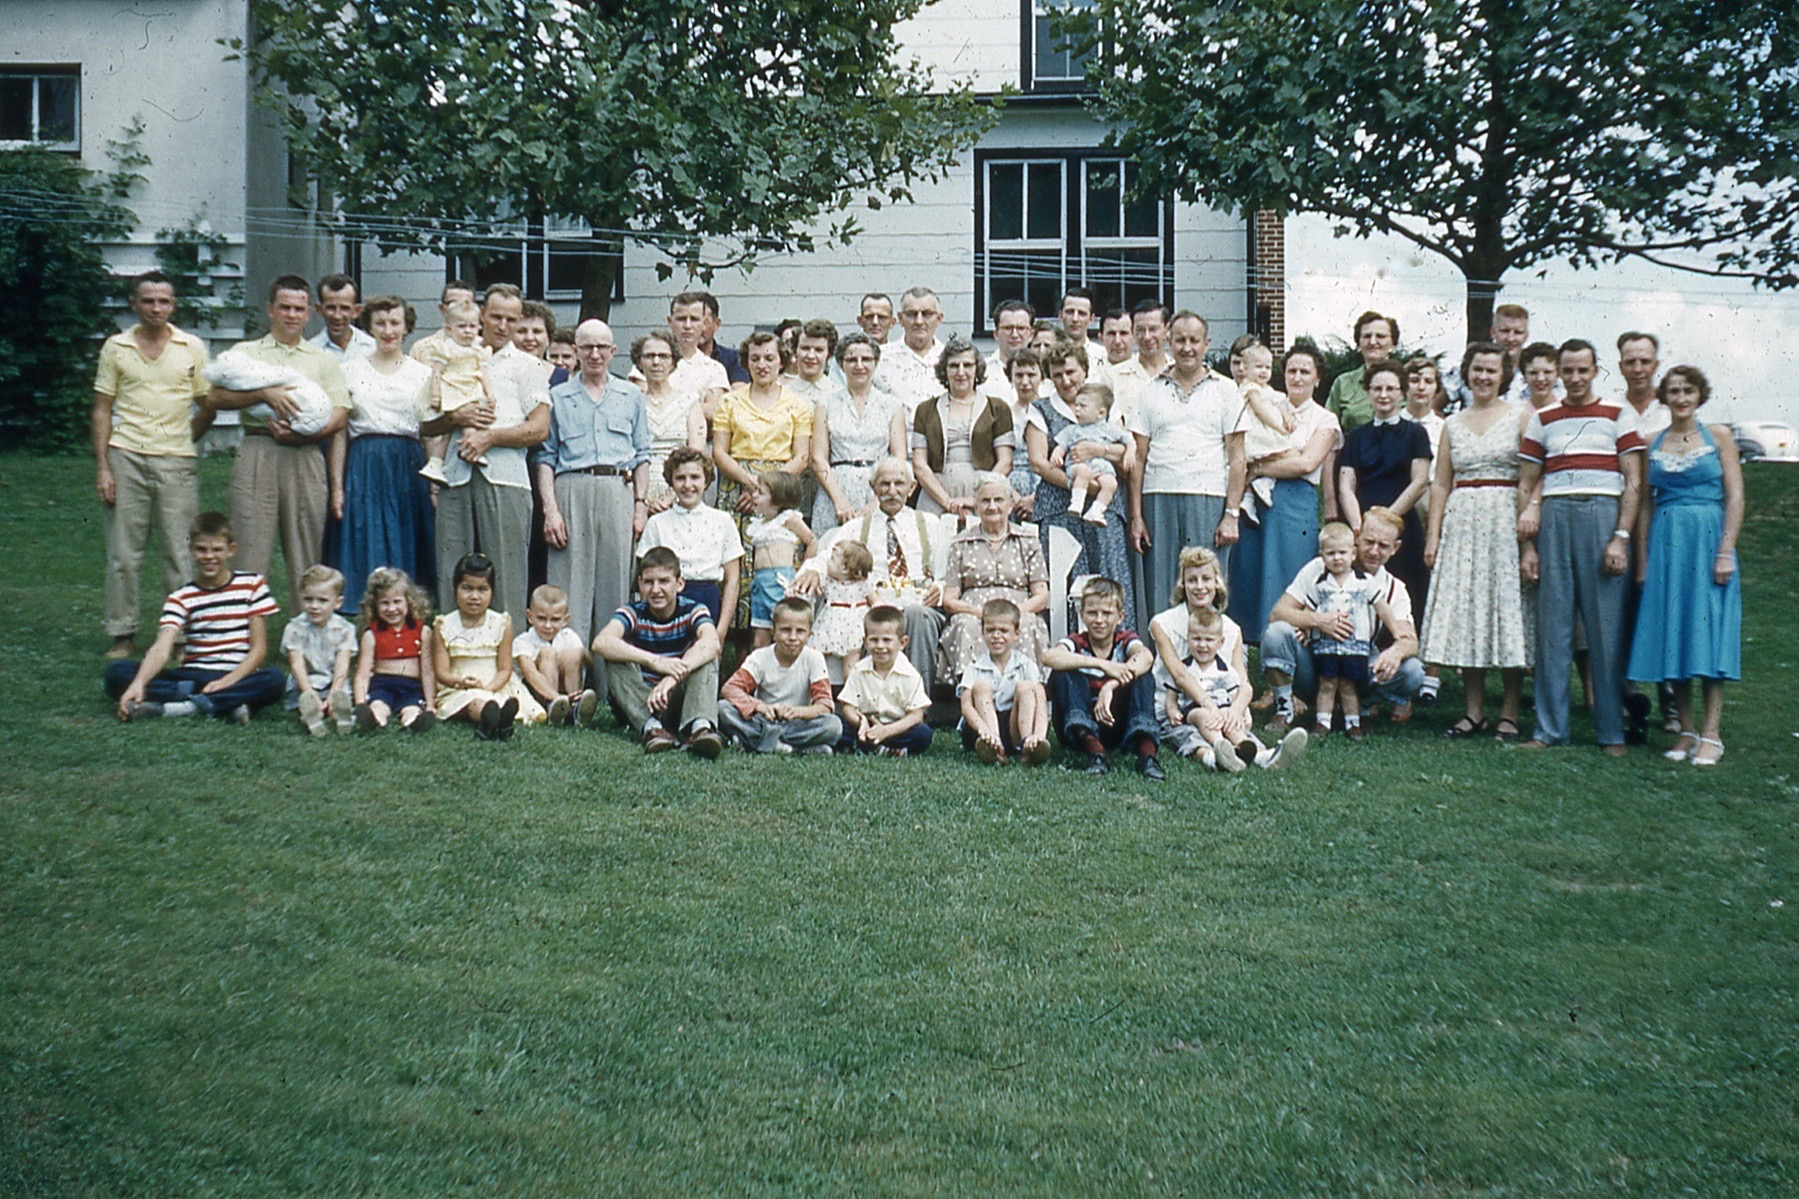 This photo of the entire Zeller(s) clan (one of three taken that day, but it's the most complete) was most likely taken on Labor Day weekend in 1955. I think my uncle Allen (far left in yellow shirt) took it with a time delay, which is why he looks blurry. Next to him are my uncle and aunt Mark and Joan; he's holding their son Randy who had been born a month earlier, and my father Arthur is directly behind them. Next to them is great uncle Eddie (Edwin) holding my sister Donna with his wife Clara peeking over his shoulder, and then come my grandparents, Harry and Tillie (my mother's head is just visible between Clara and Harry). I don't know the next two people, but peeking between them is my aunt Jane (married to Allen). Sitting in the kiddie row third from the left is Barbara (daughter of Ray and Arlene Light (Arlene's in the dark dress fourth from the right; Ray's just a head at the right hand window)). Next in the kiddie row is my cousin Kathy, then me in short pants. Don't know the next guy, but next to him is my uncle Reed. Of course, those are my great-grandparents sitting right behind the kids, and that tall kid in the white blouse directly in front of Tillie is Helen Fortna, whom we finally figured out is Donna and my second cousin. Her parents are Betts and Barney Fortna (and I'm stopping after this); Barney is second row far right and Betts is wearing a green blouse standing behind Arlene Light, I think. Oh, and Elmer (next to last son of Grant and Emma) is the guy in the horizontal striped shirt second from the right. [Deep exhale]  Oh, yeah, Kathy's mother Fumiko is completely hidden (that's the danger of a time lapse photo) and her father Neal's head is mostly obscured by my sister Donna (being held by Eddie).  (Click on the pic to enlarge and hover the mouse pointer over the pic to see this caption; move the pointer away to remove the caption)